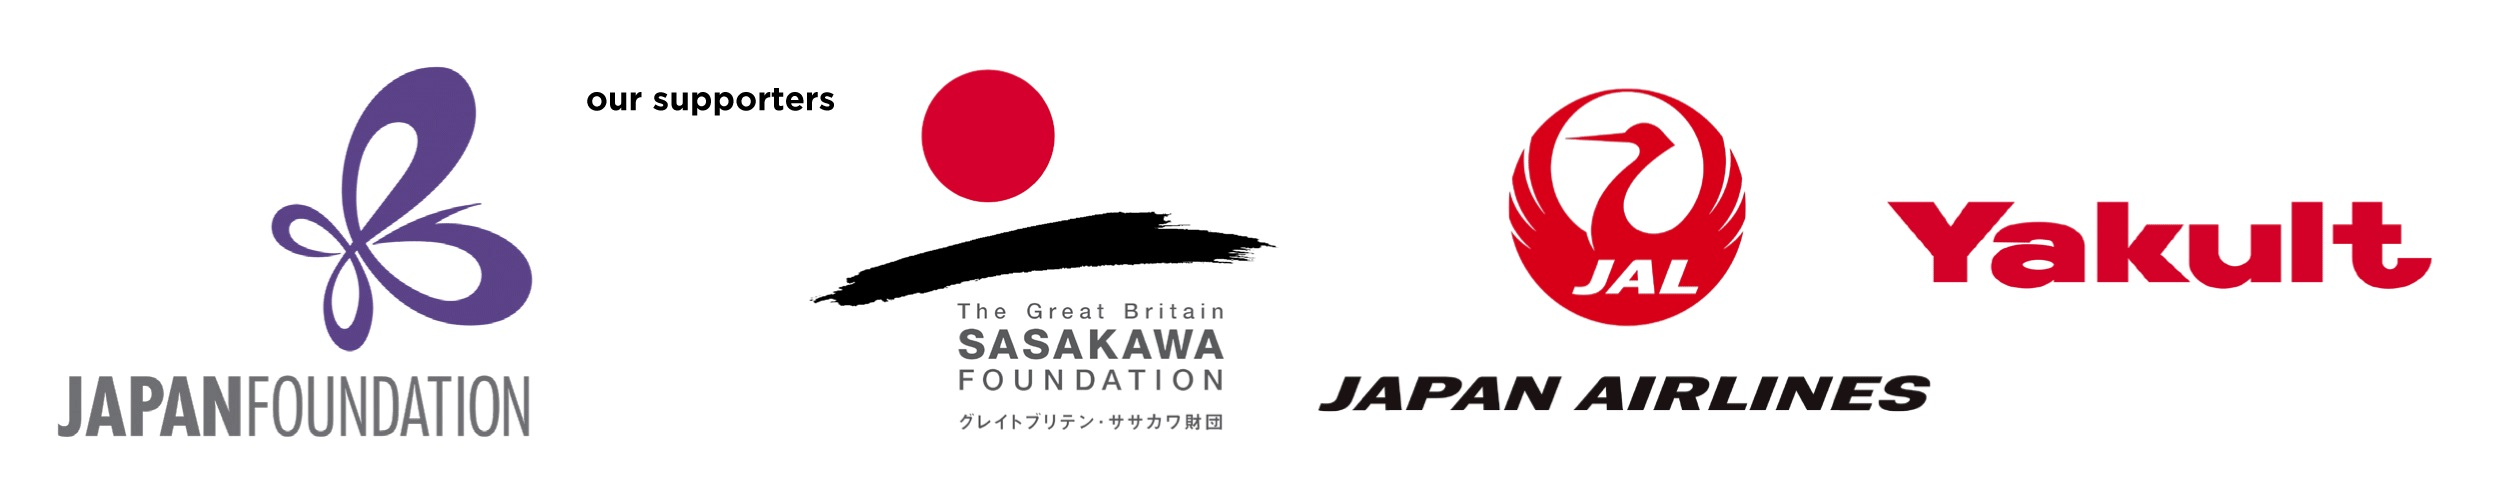 Japan Foundation 2020 Supporters